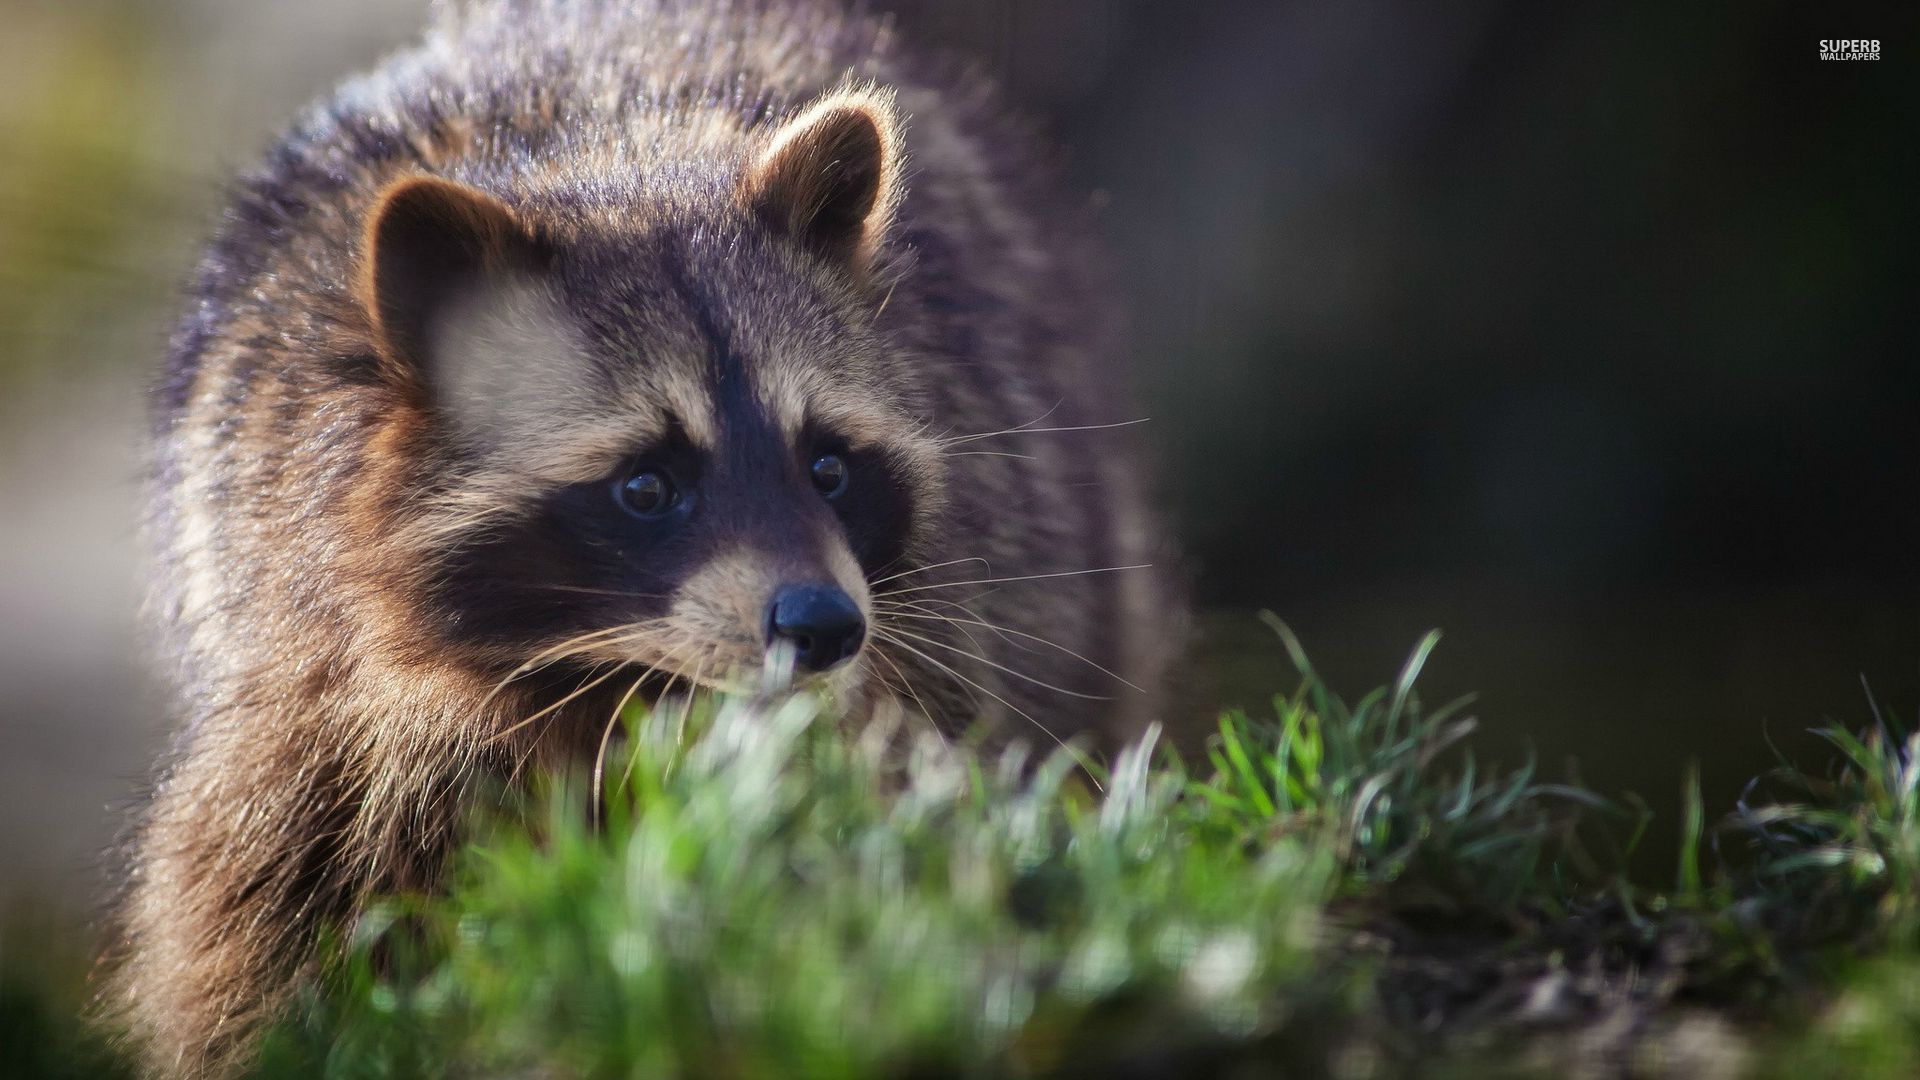 hd - raccoon - new raccoon wallpapers